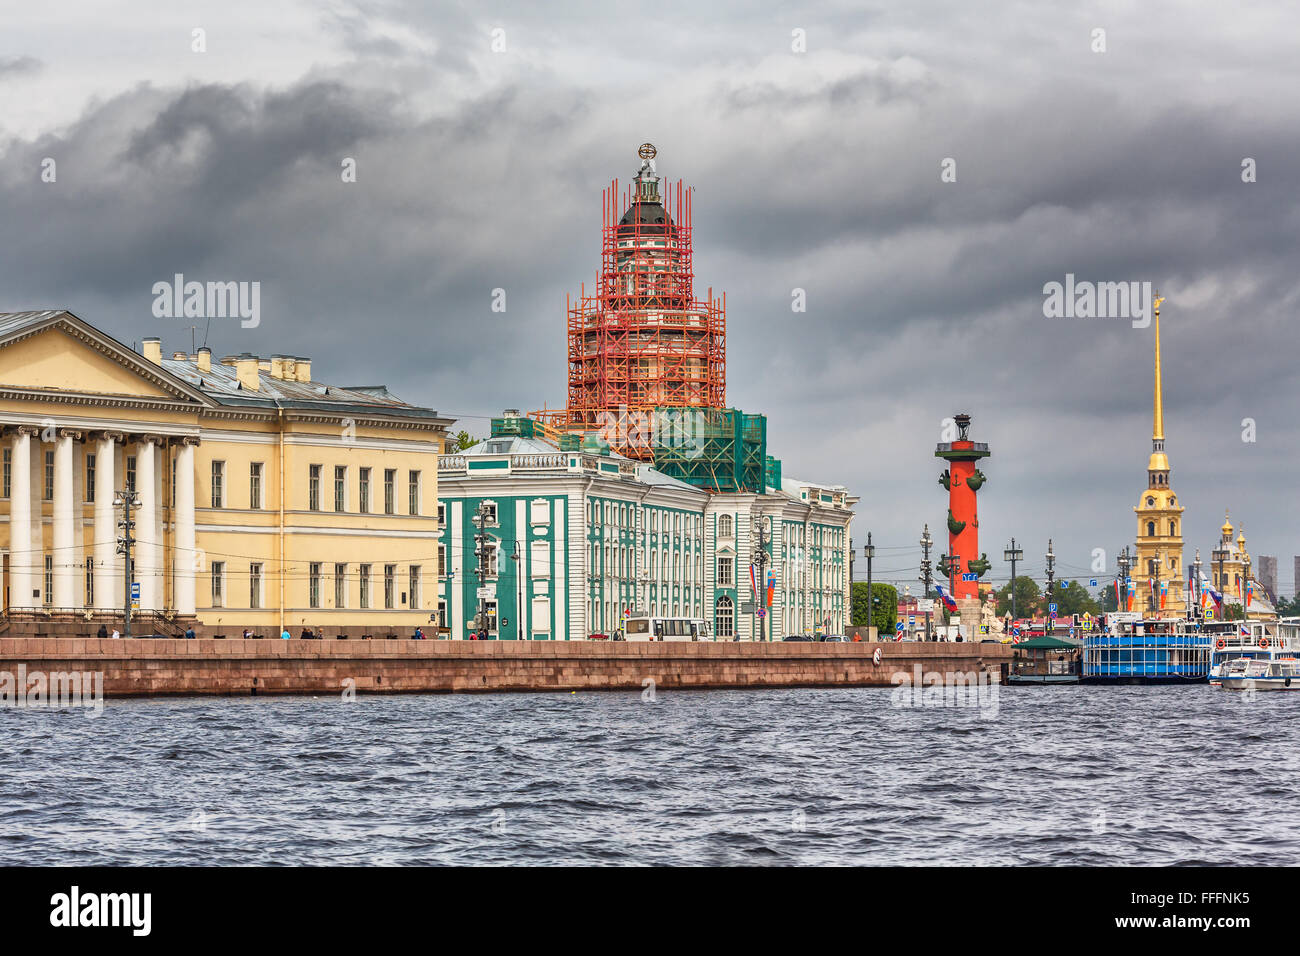 Kunstkamera, Rostral column and Peter and Paul fortress from Neva river, Saint Petersburg, Russia - Stock Image